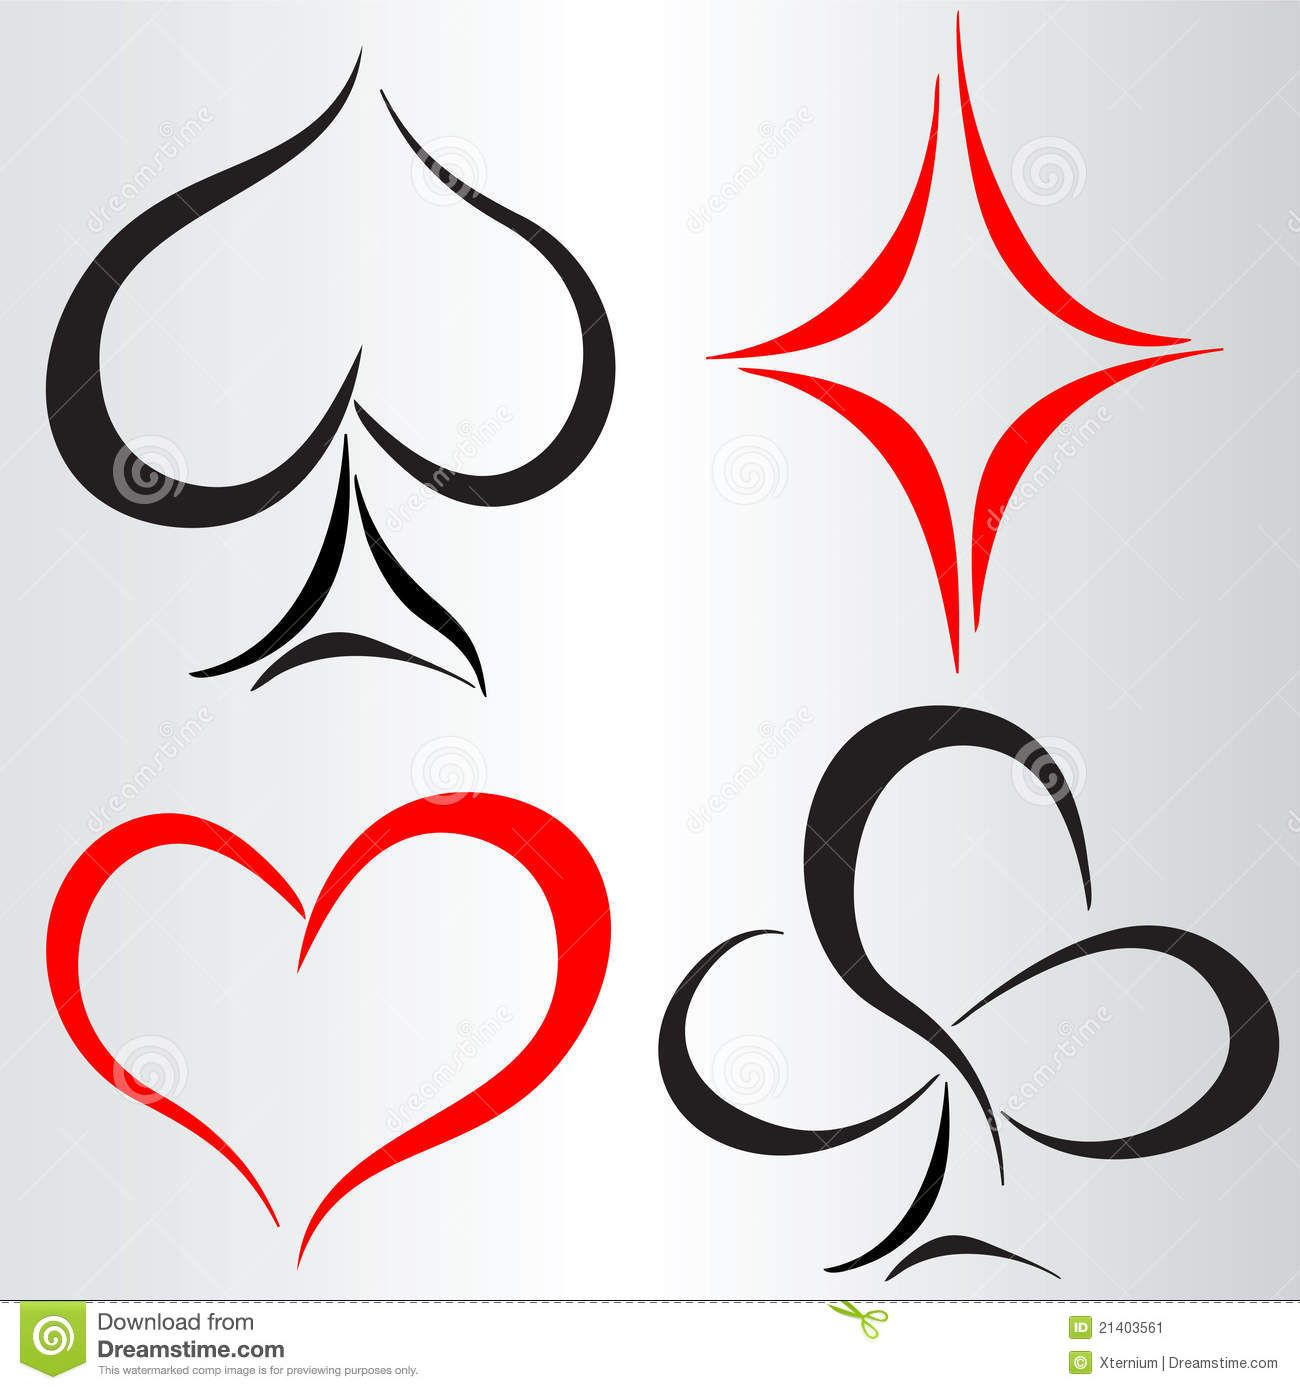 Simple Edge Card Suits Souts Card Tattoo Poker Tattoo Ideas And Designs